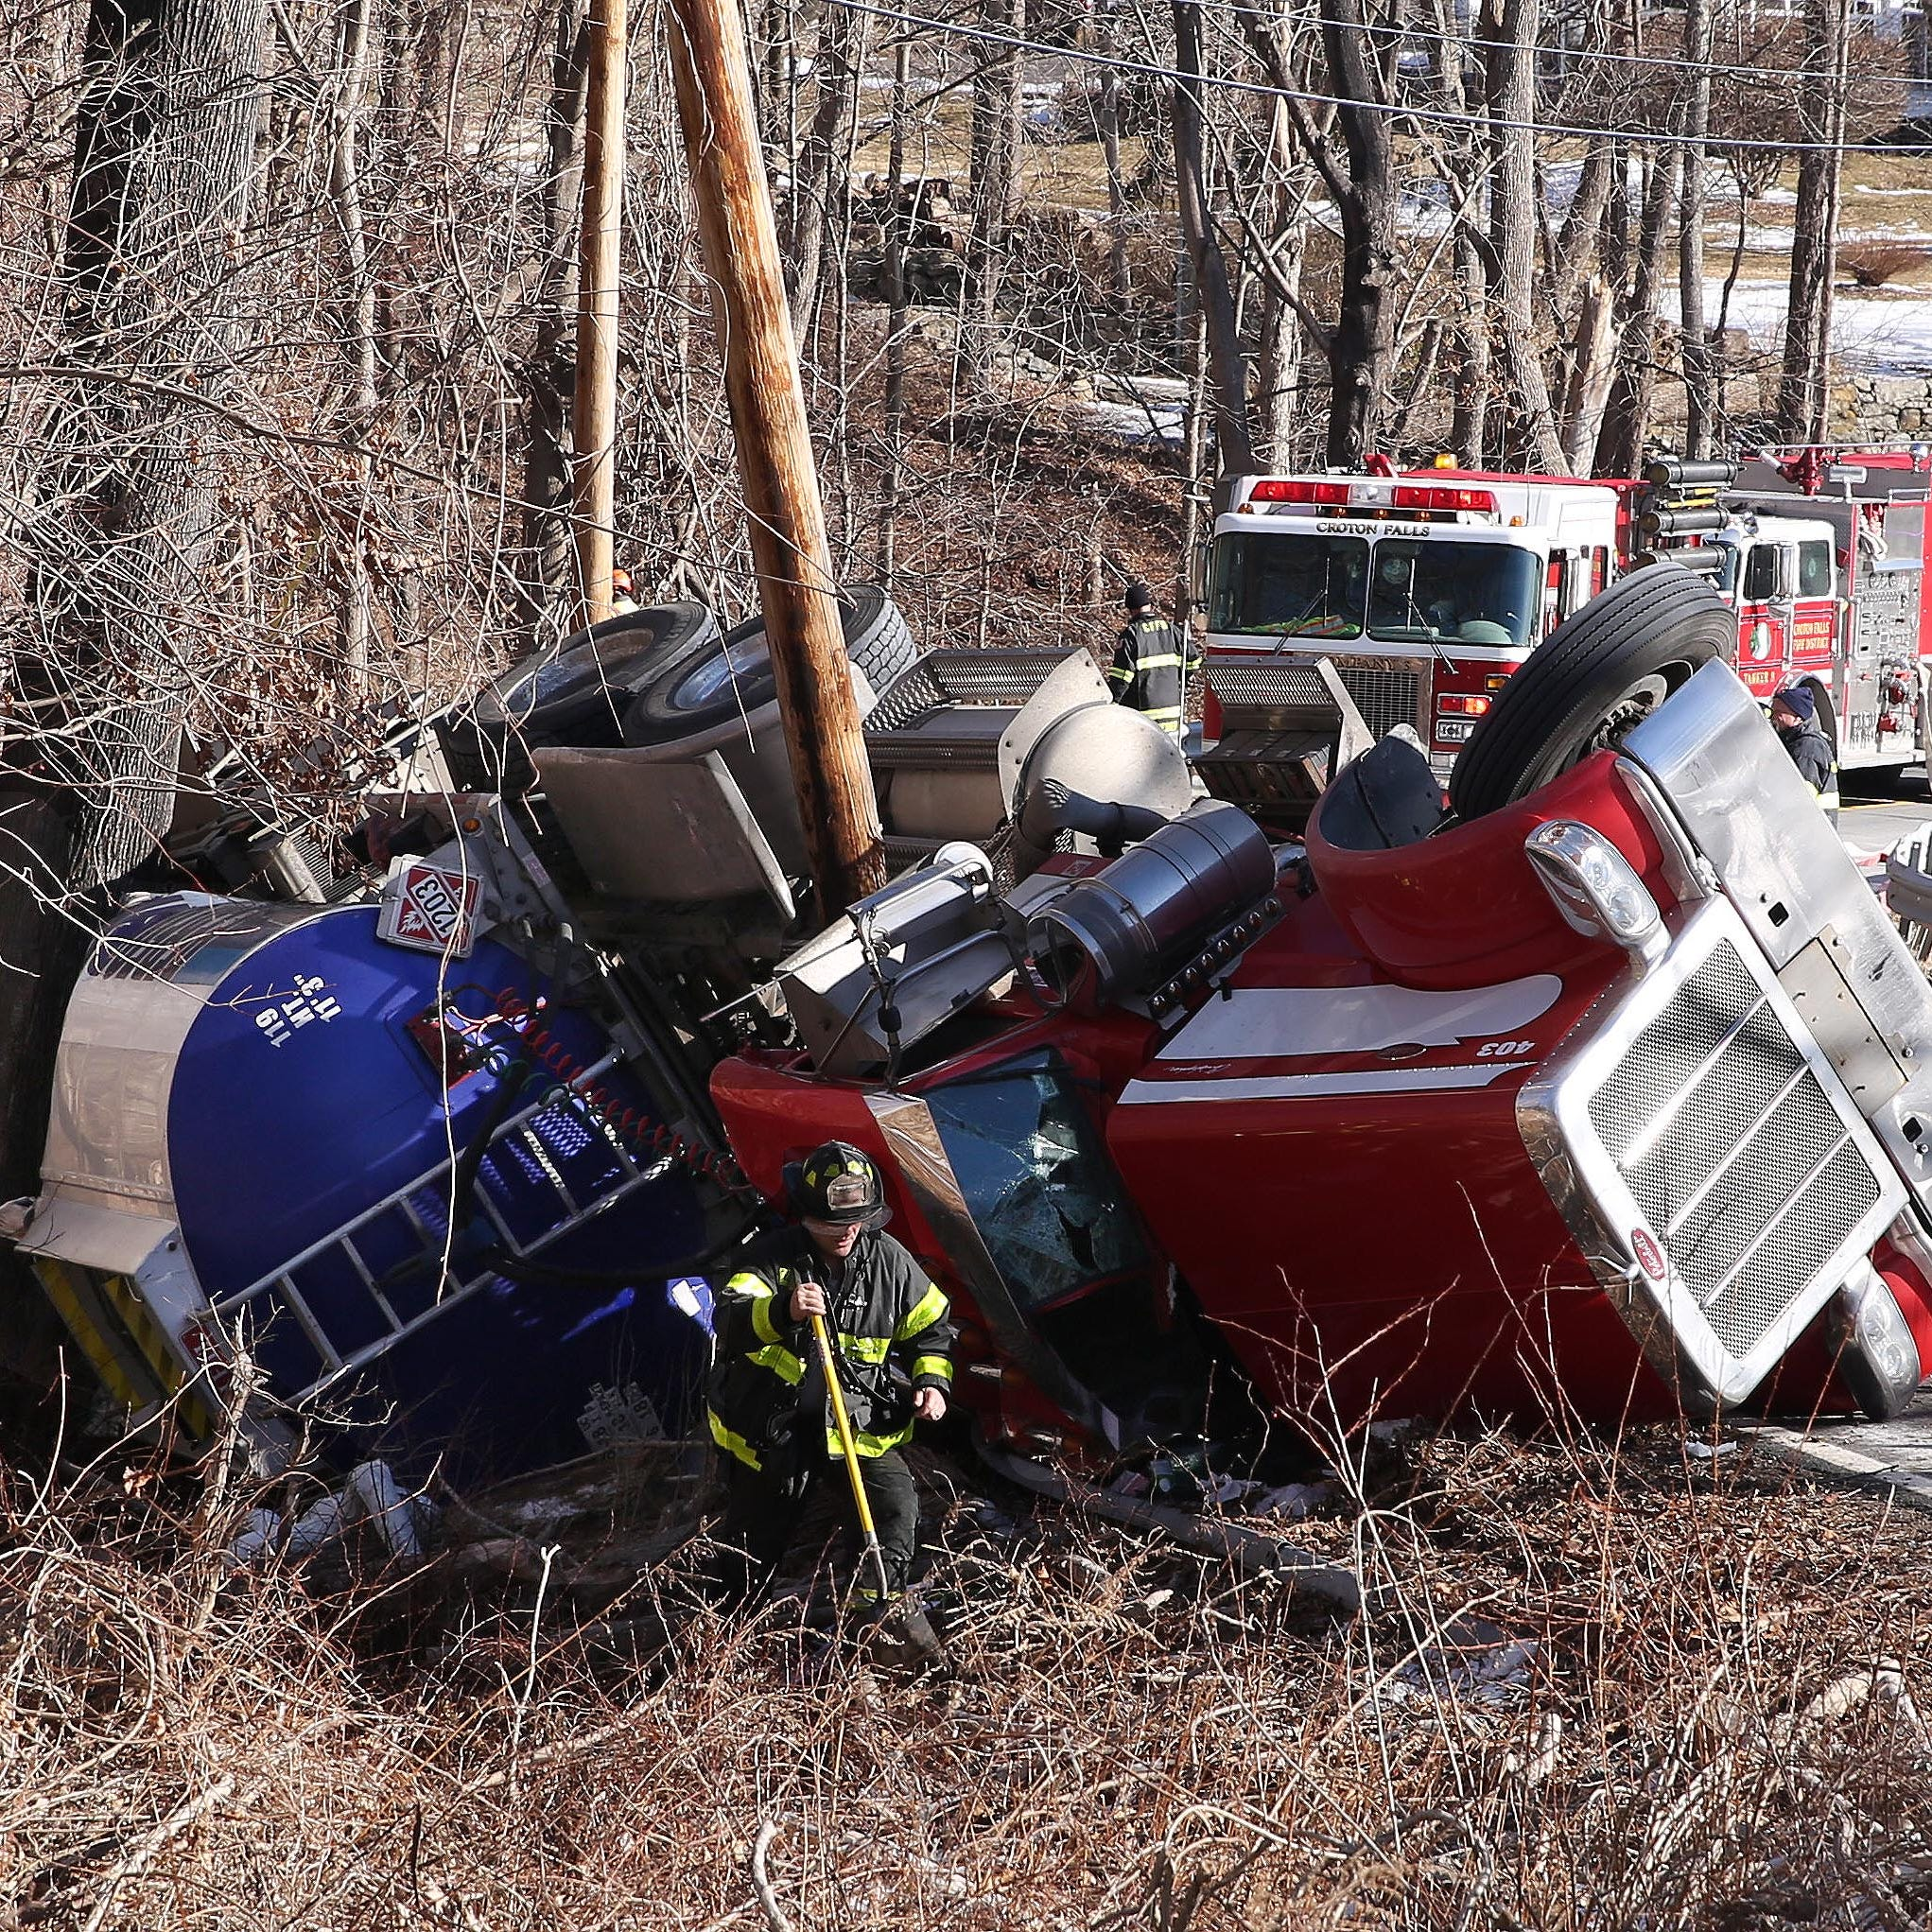 Tractor-trailer overturns on Route 116 in North Salem